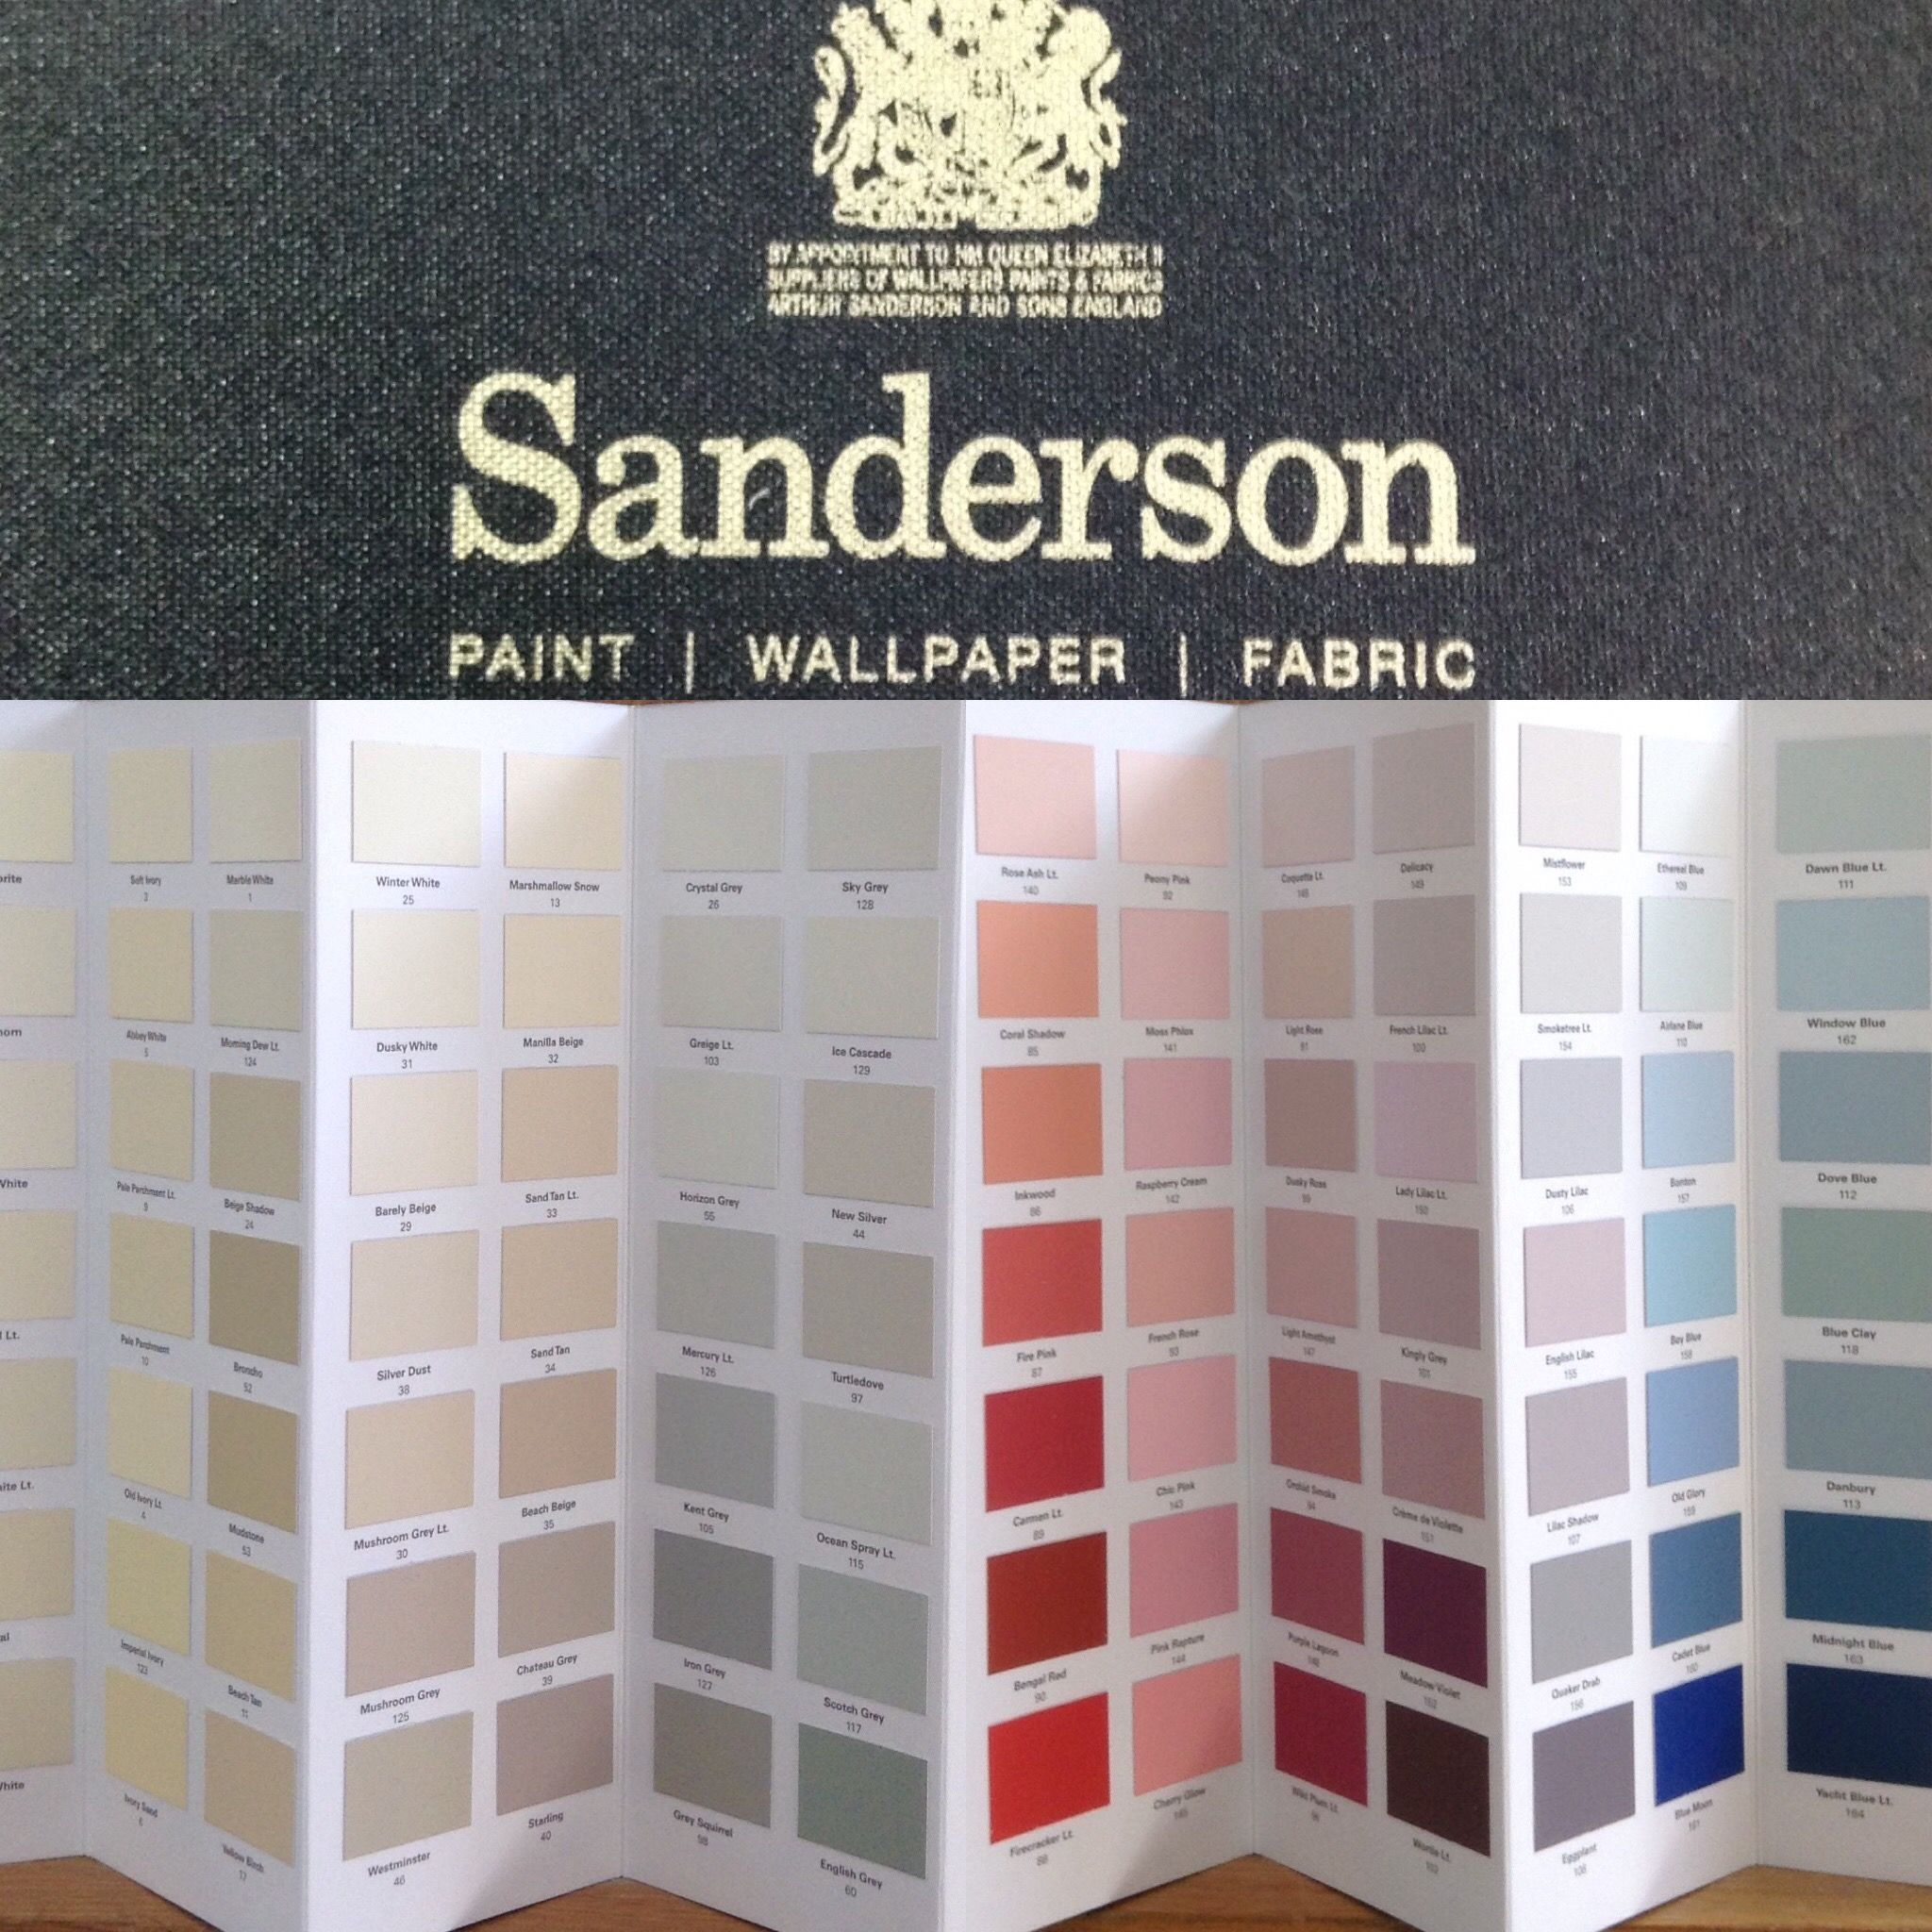 Leyland paints colour chart - Sanderson New Colour Binder Now Available In Store Order Your Free Colour Charts 01325 359982